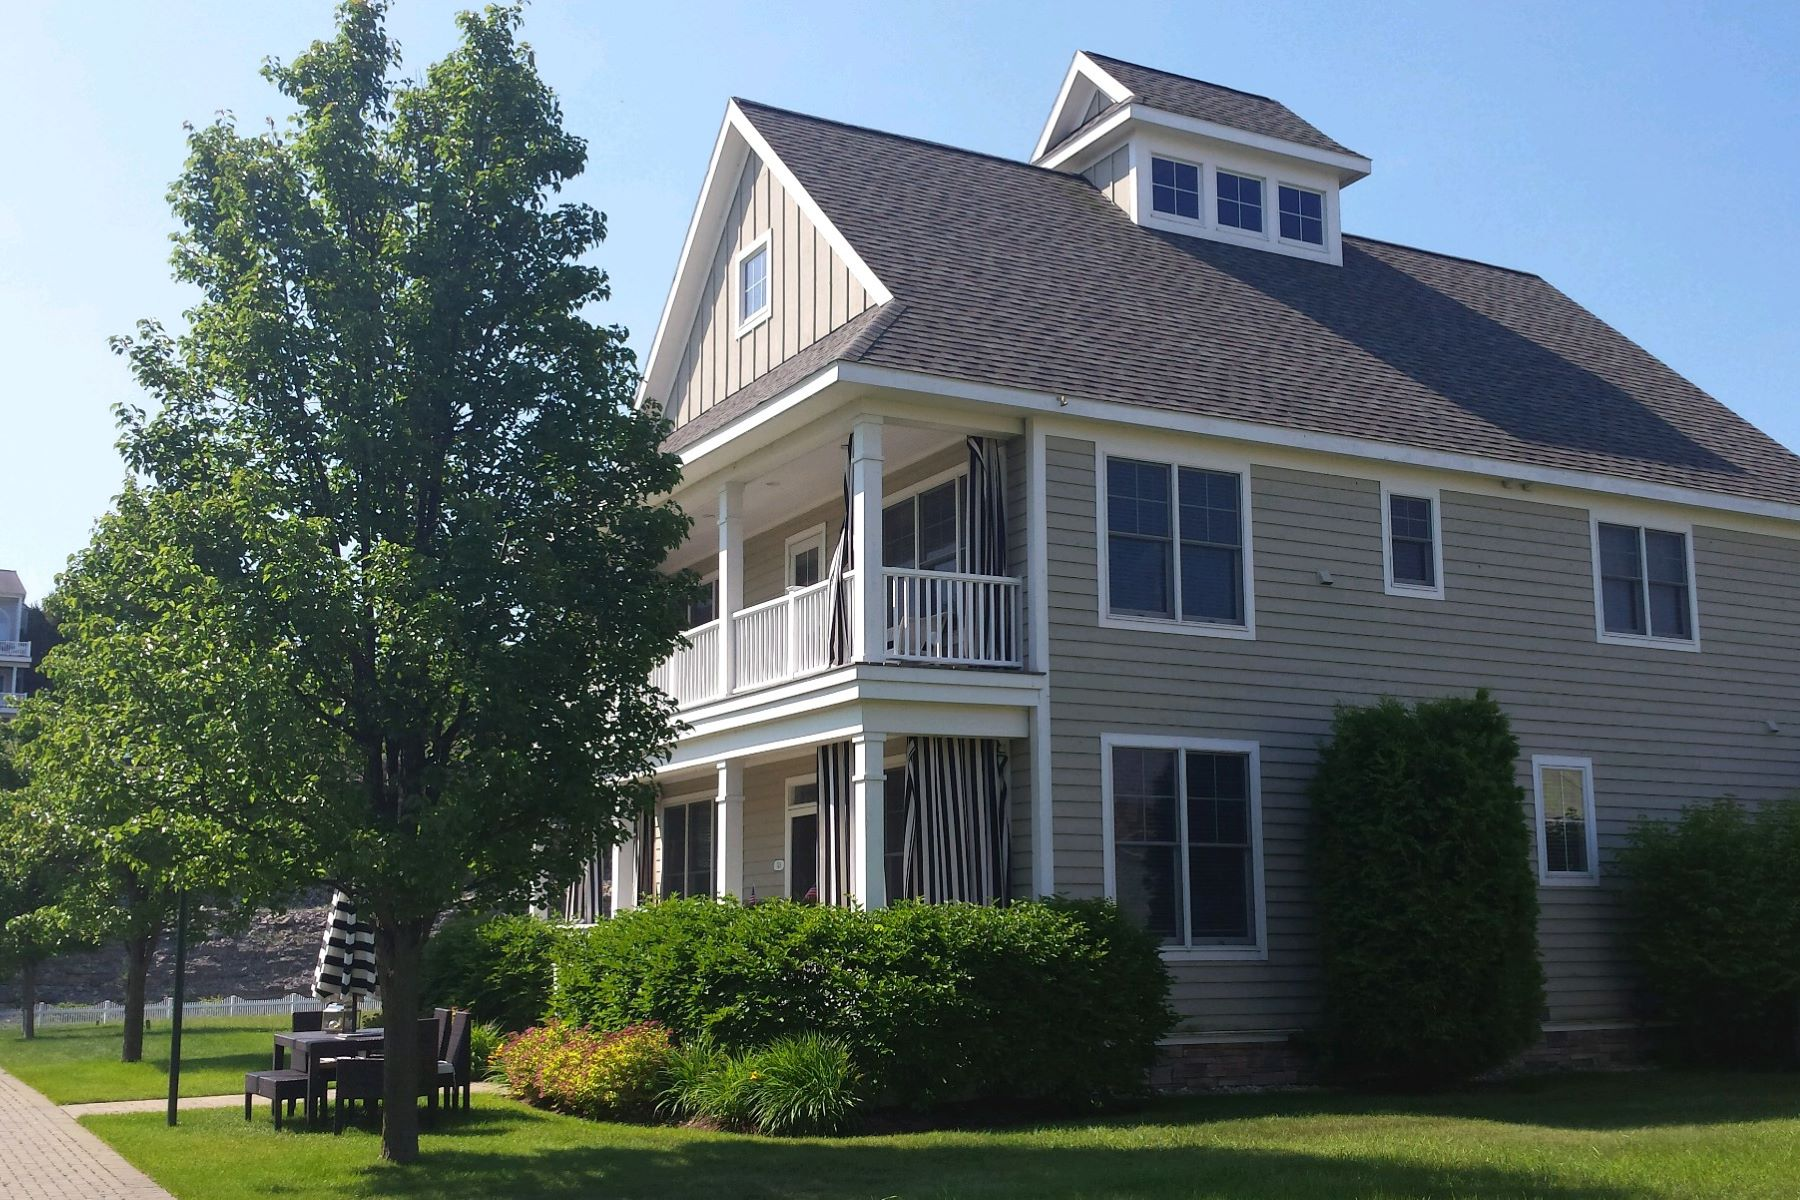 Single Family Homes for Active at Charming Cottage in Bay Harbor, Michigan 748 Sunset Way Bay Harbor, Michigan 49770 United States